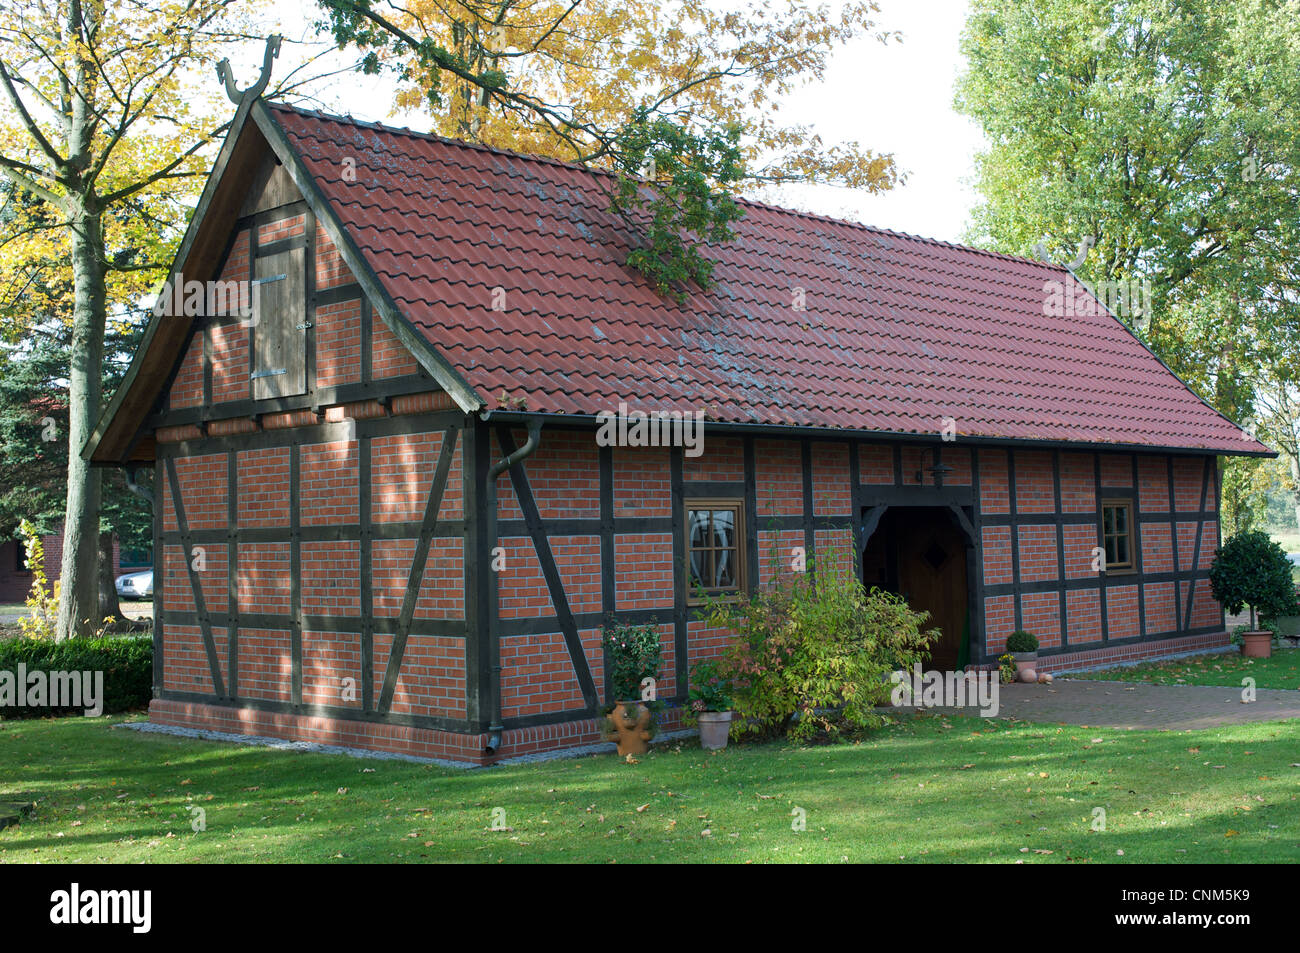 Traditional wood-framed out building Germany - Stock Image